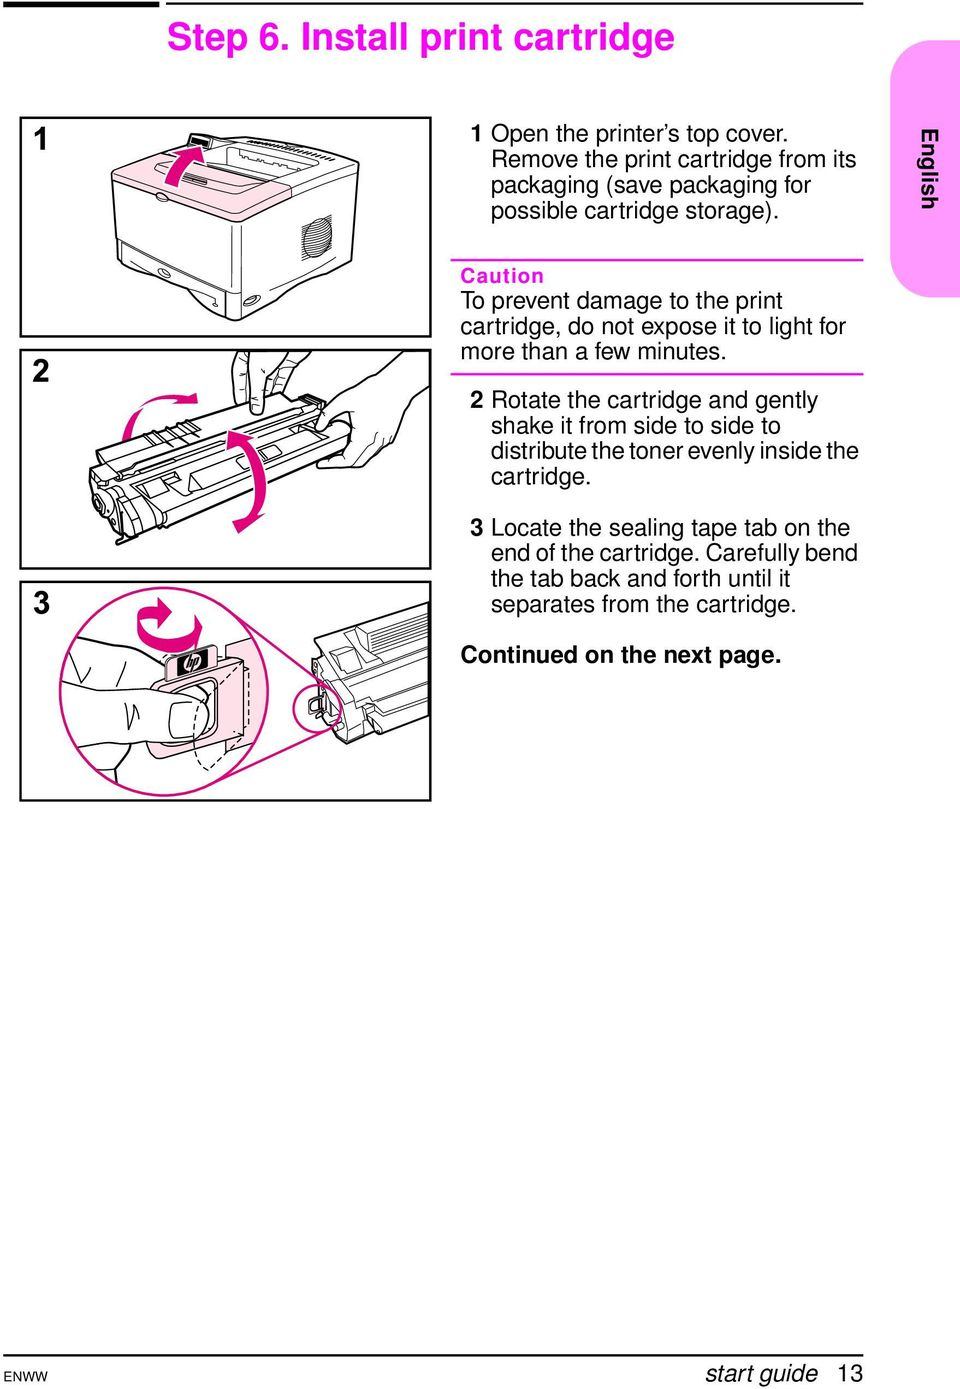 English Caution To prevent damage to the print cartridge, do not expose it to light for more than a few minutes.